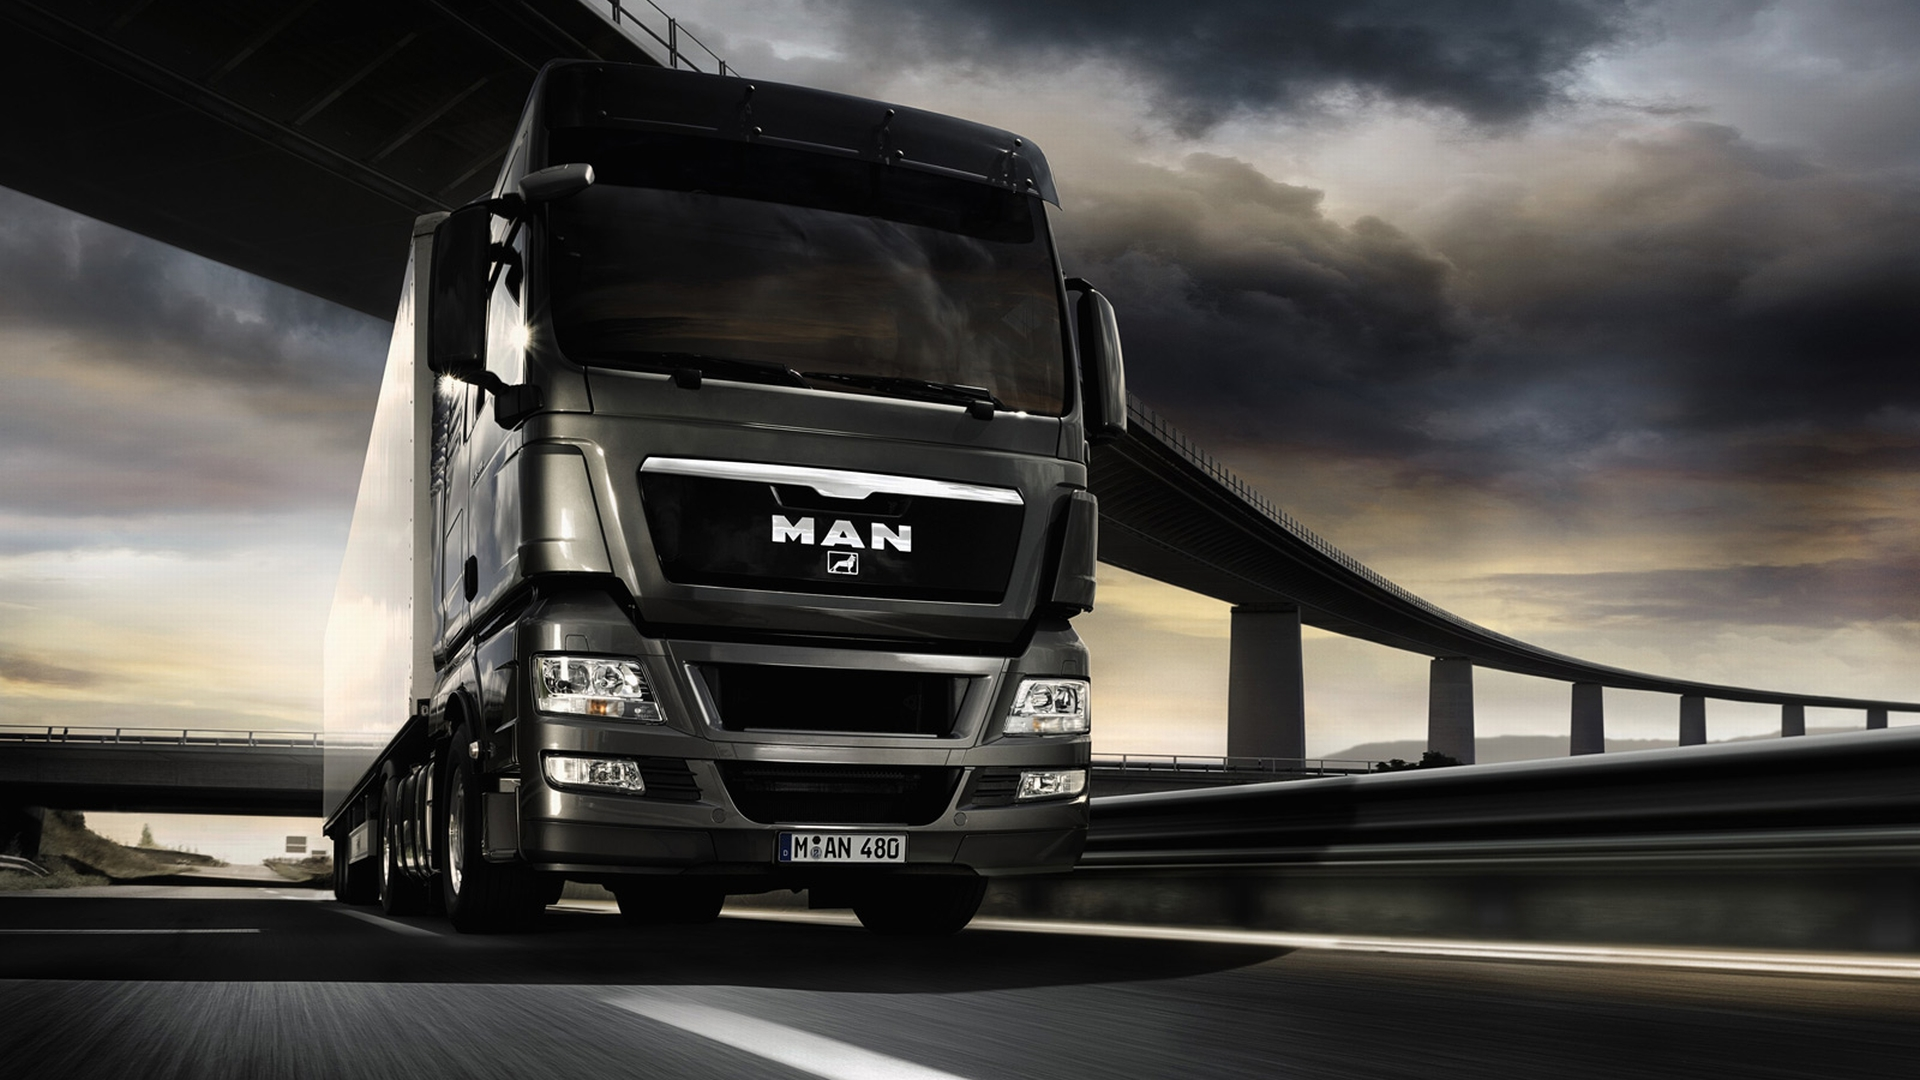 MAN Truck Wallpaper (8654) - Wallpaperesque